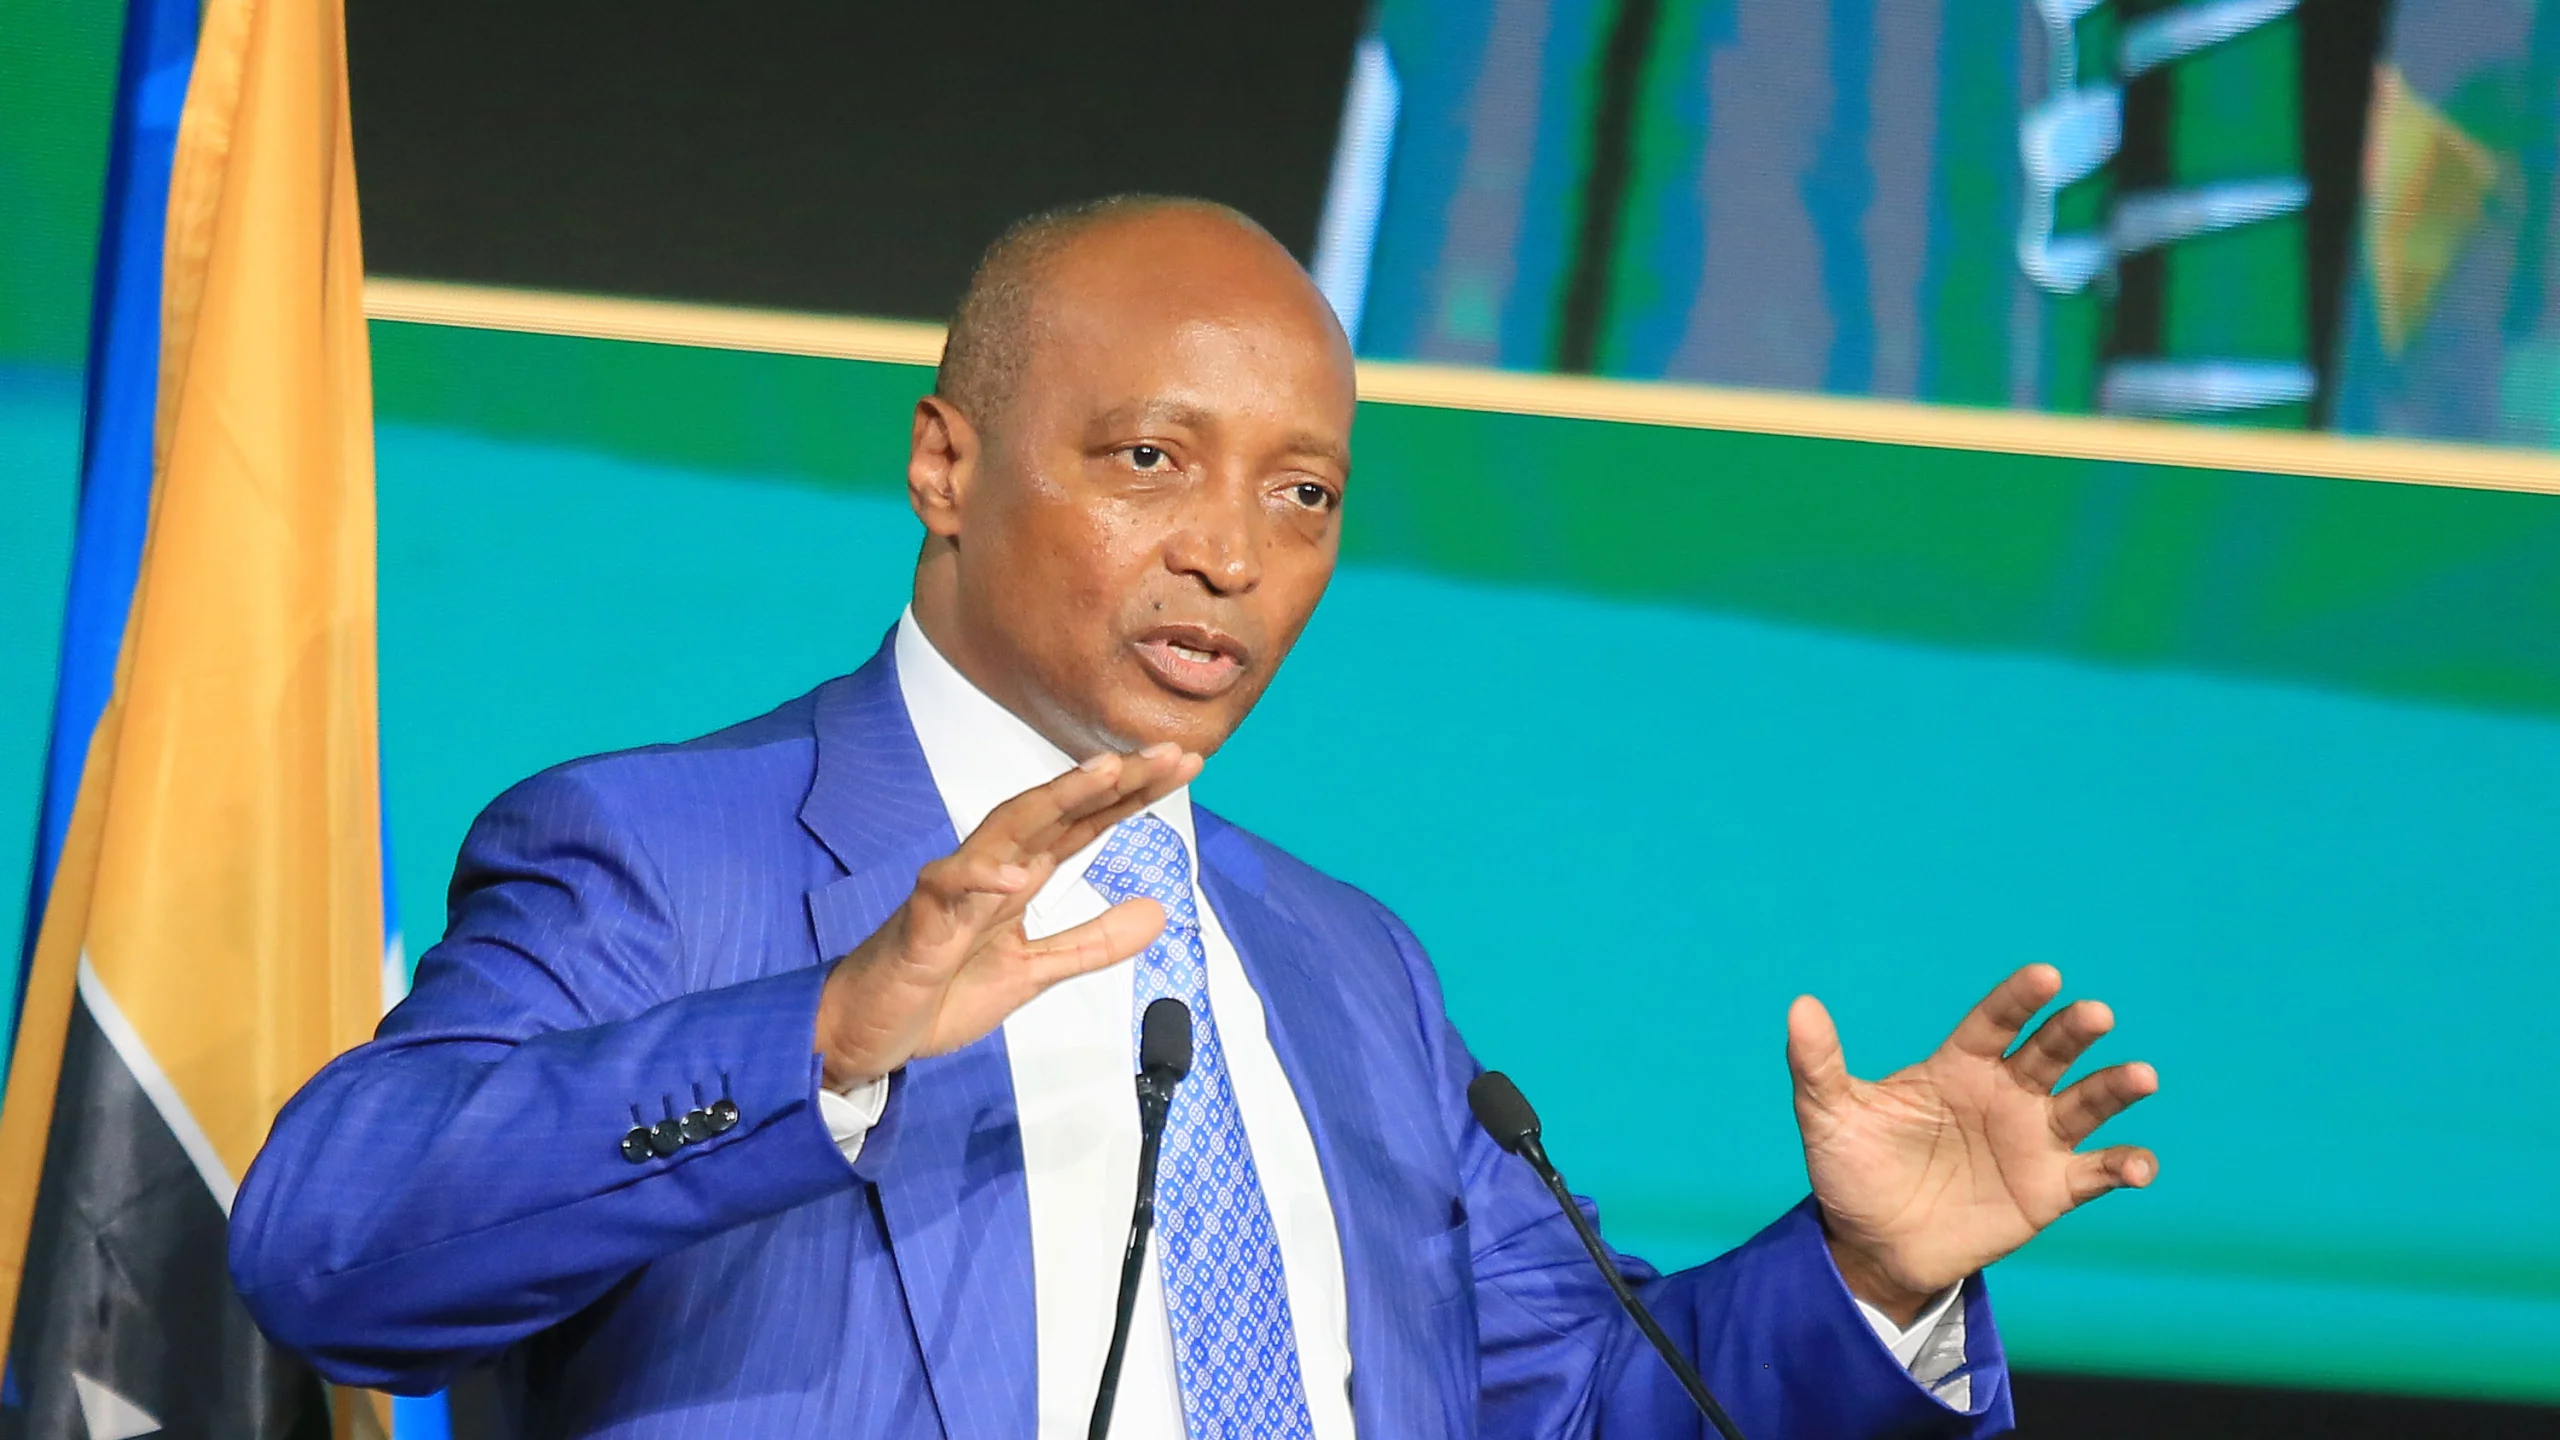 Africa must win World Cup soon, says new CAF boss Motsepe